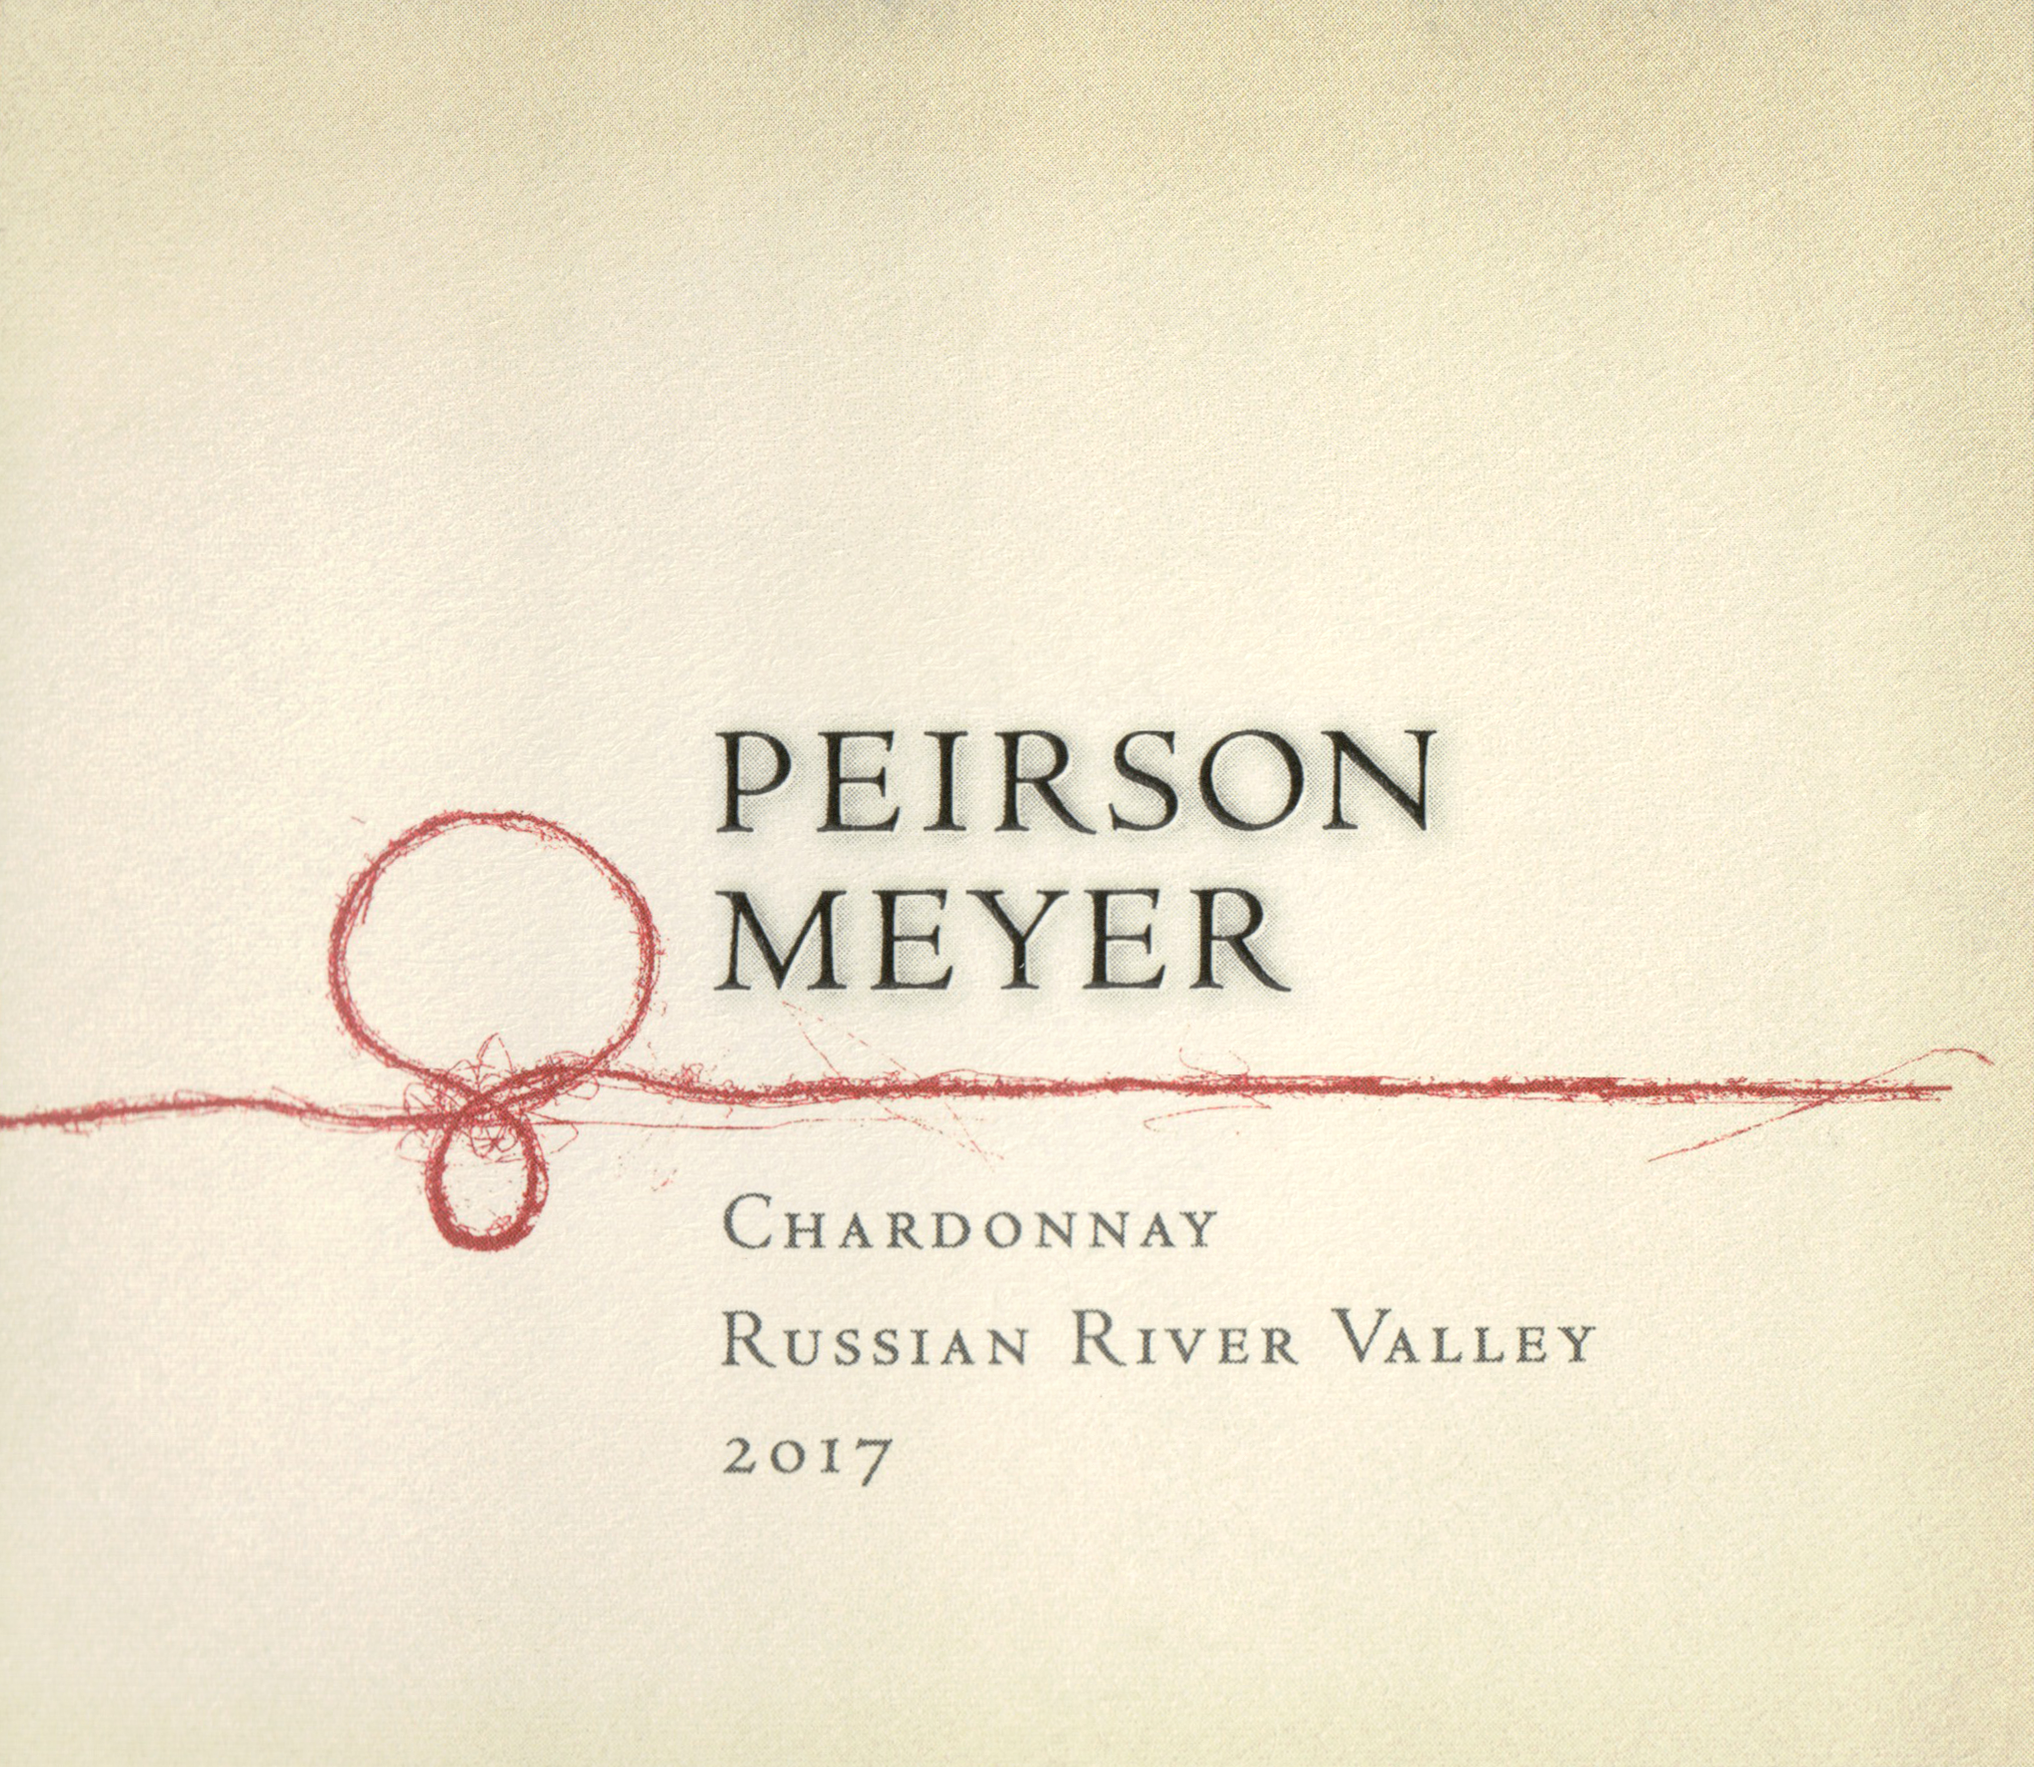 Peirson Meyer Russian River Valley Chardonnay 2017